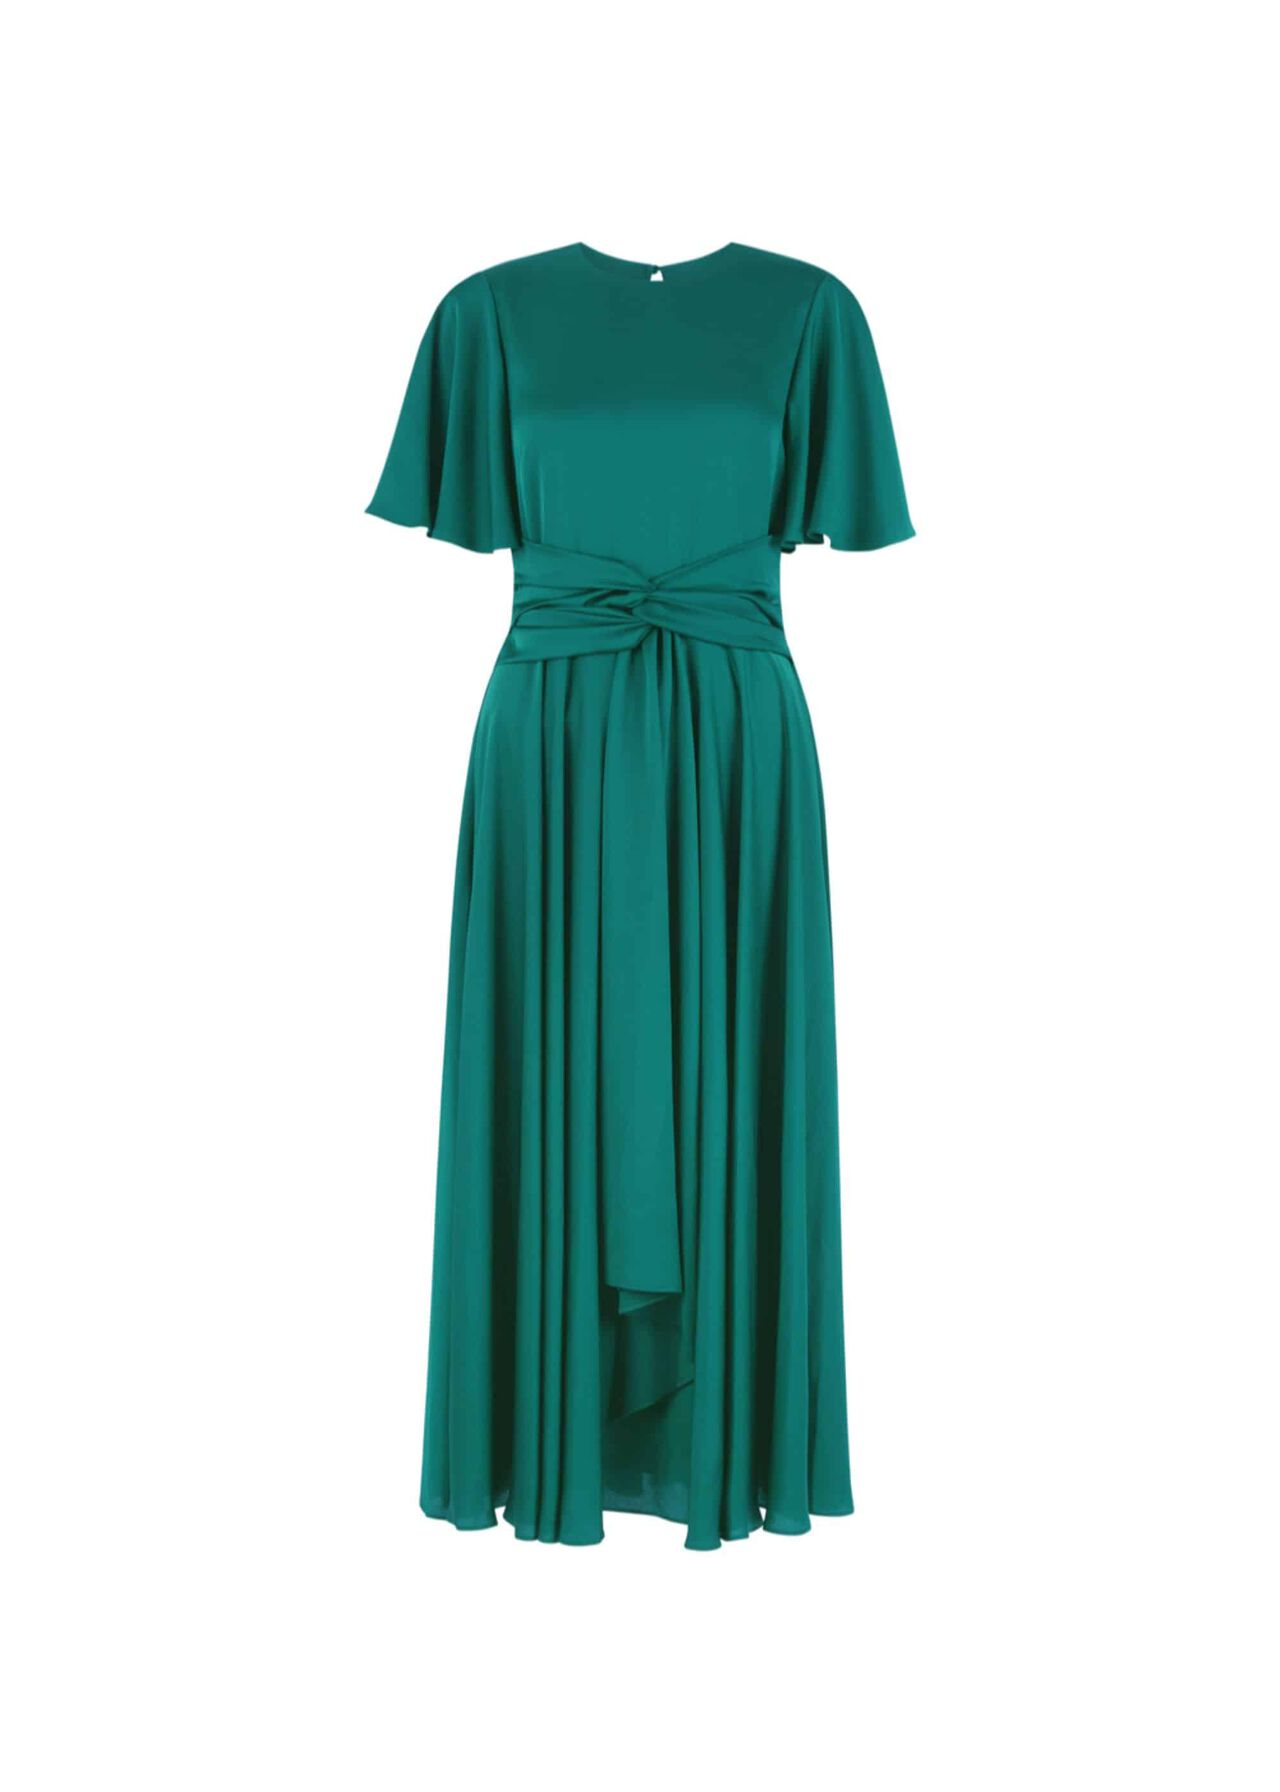 Leia Dress Emerald Green